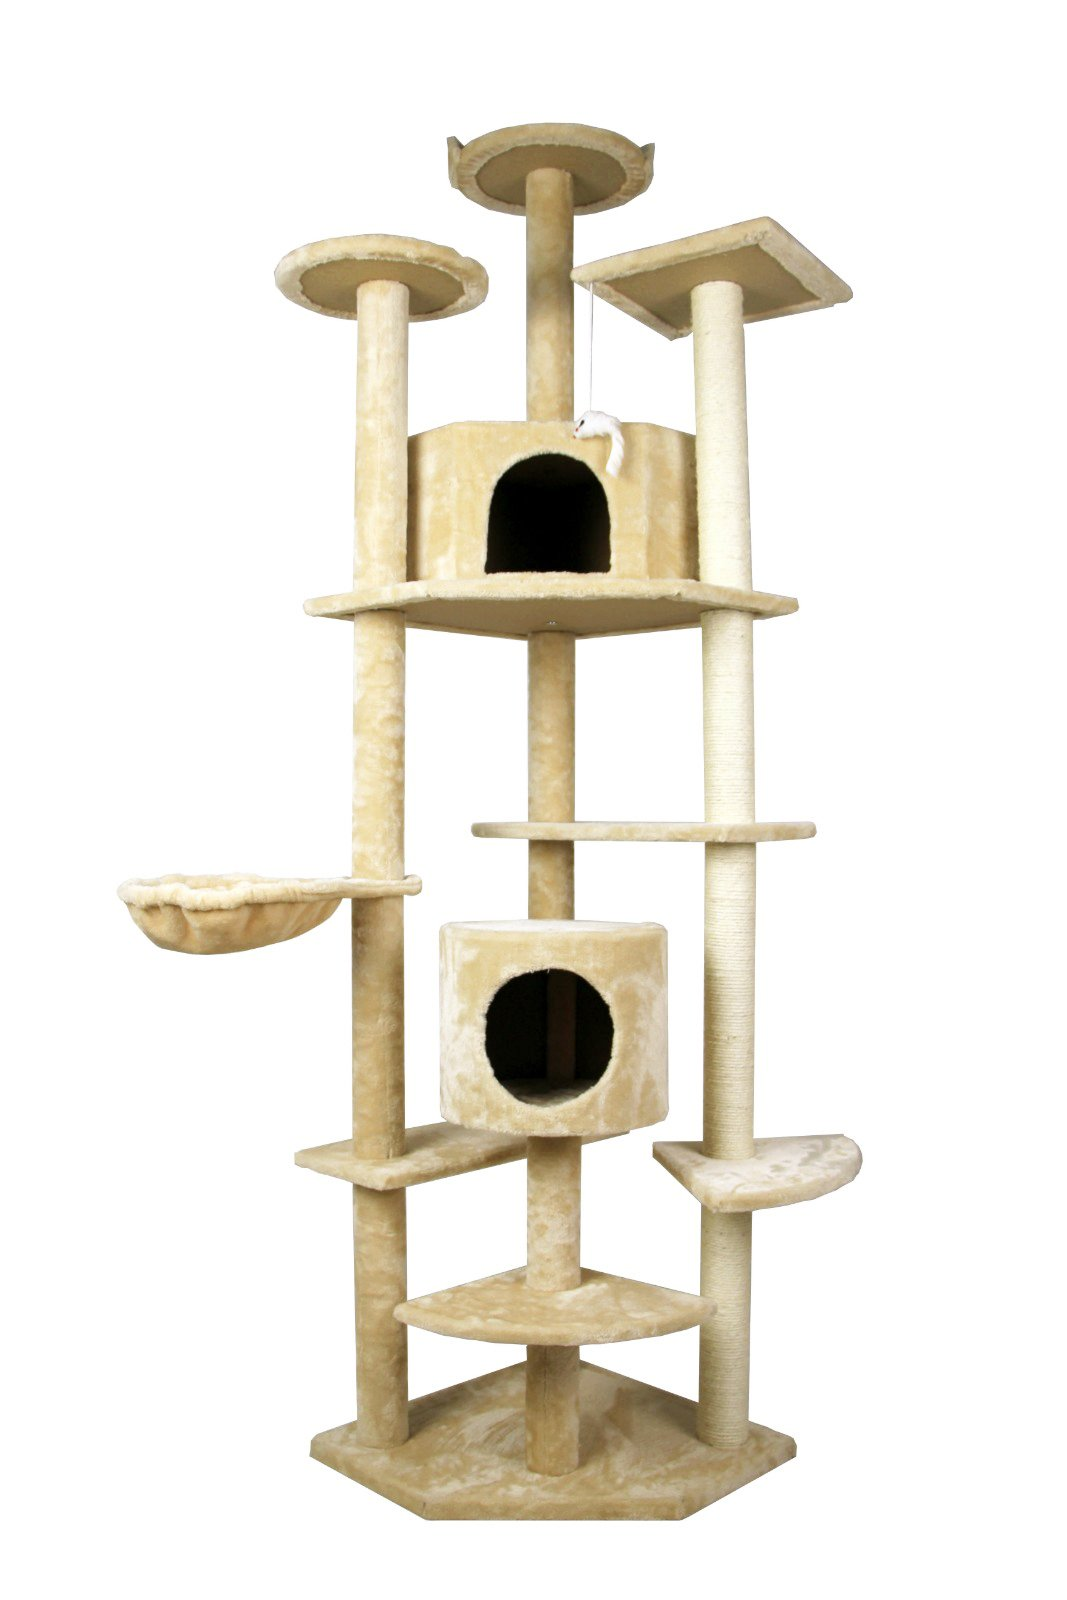 79'' Cat Tree Tower Condo Furniture Scratch Post Kitty Pet House Play Furniture Sisal Pole and Stairs (Beige)